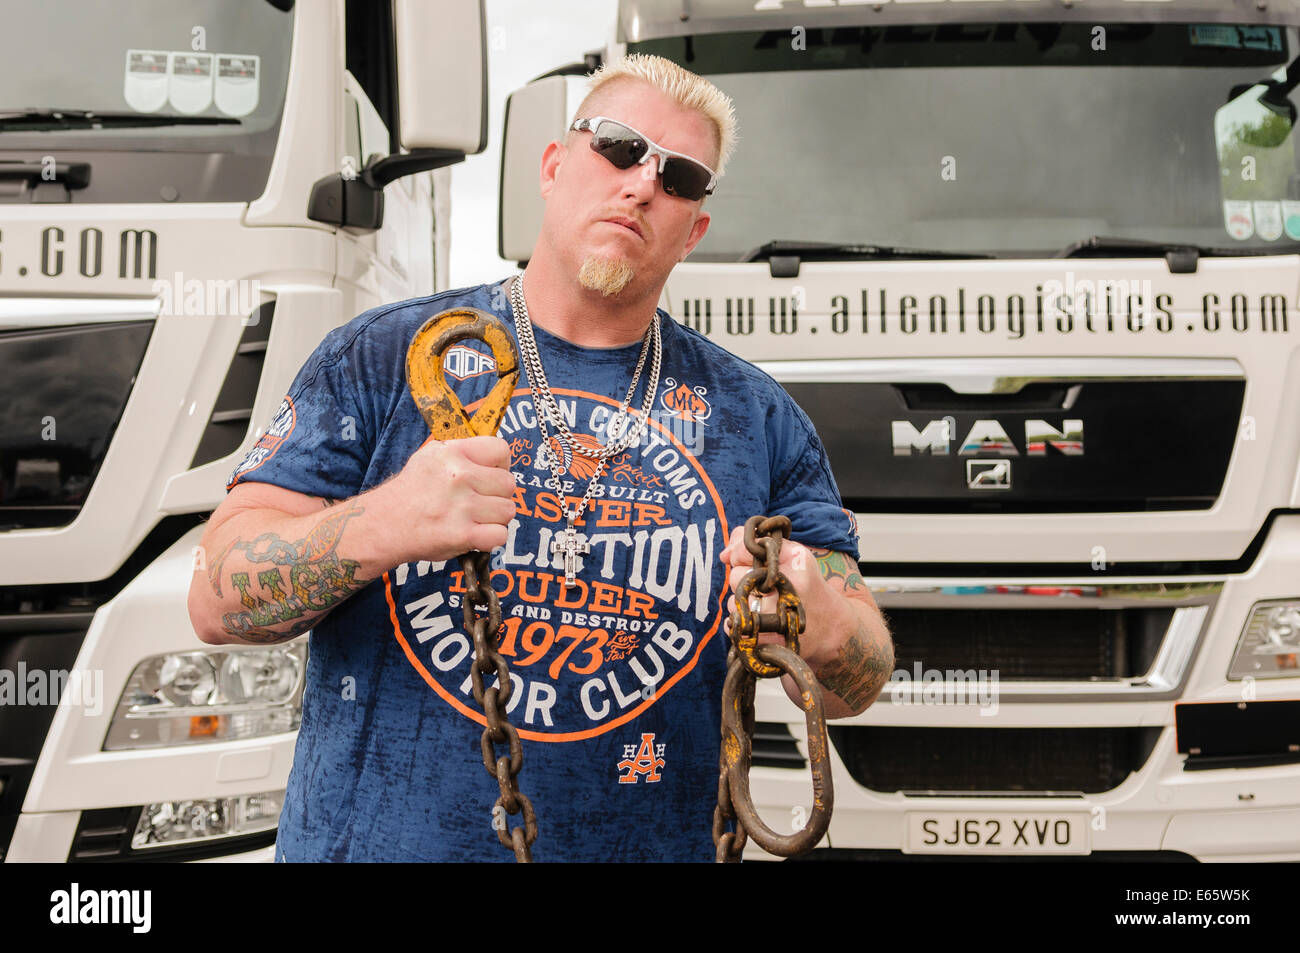 Lisburn, Northern Ireland. 15 August 2014 - Ron 'Ronnie' Shirley from Lizard Lick Towing opens Truckfest, - Stock Image